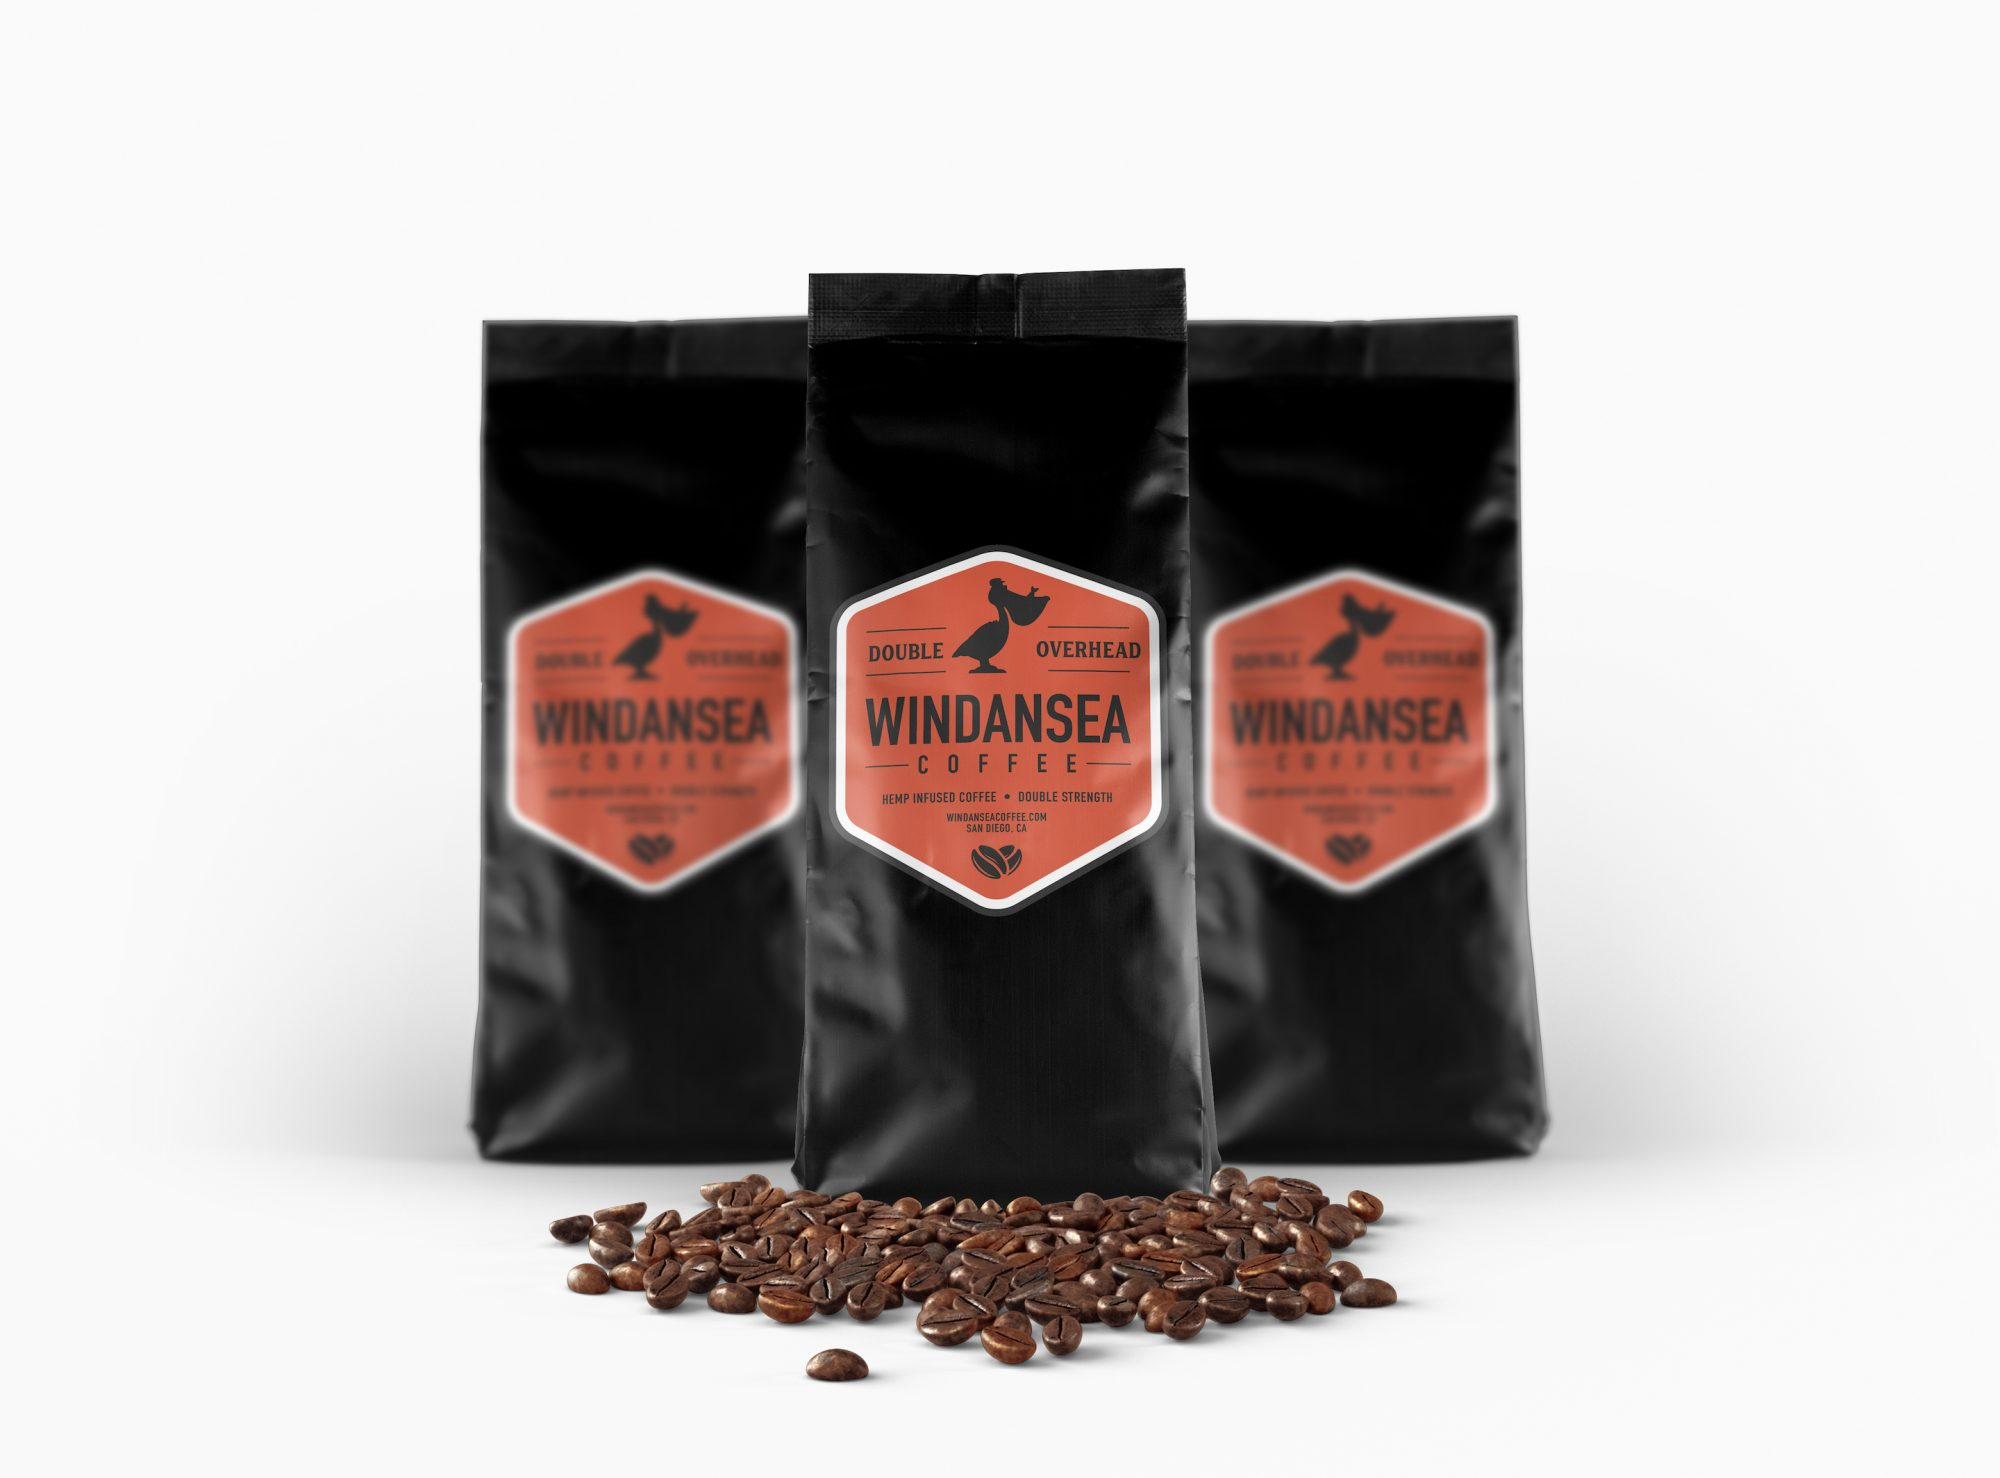 WindanseaCoffee Packaging Mockup DoubleOverhead 08 15 19 - 12oz Double Overhead CBD Coffee - Double Strength (Whole Bean)